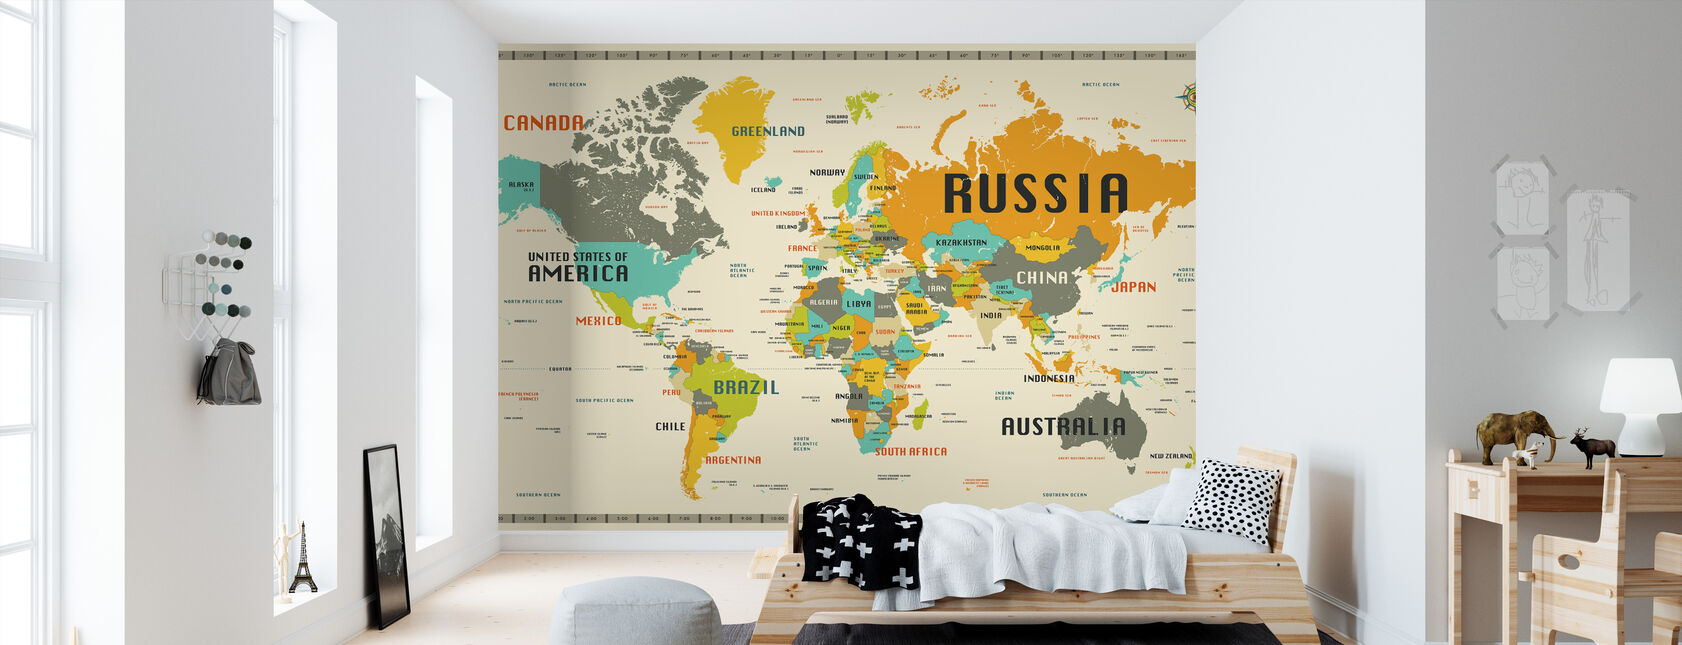 World Map Explore - Wallpaper - Kids Room